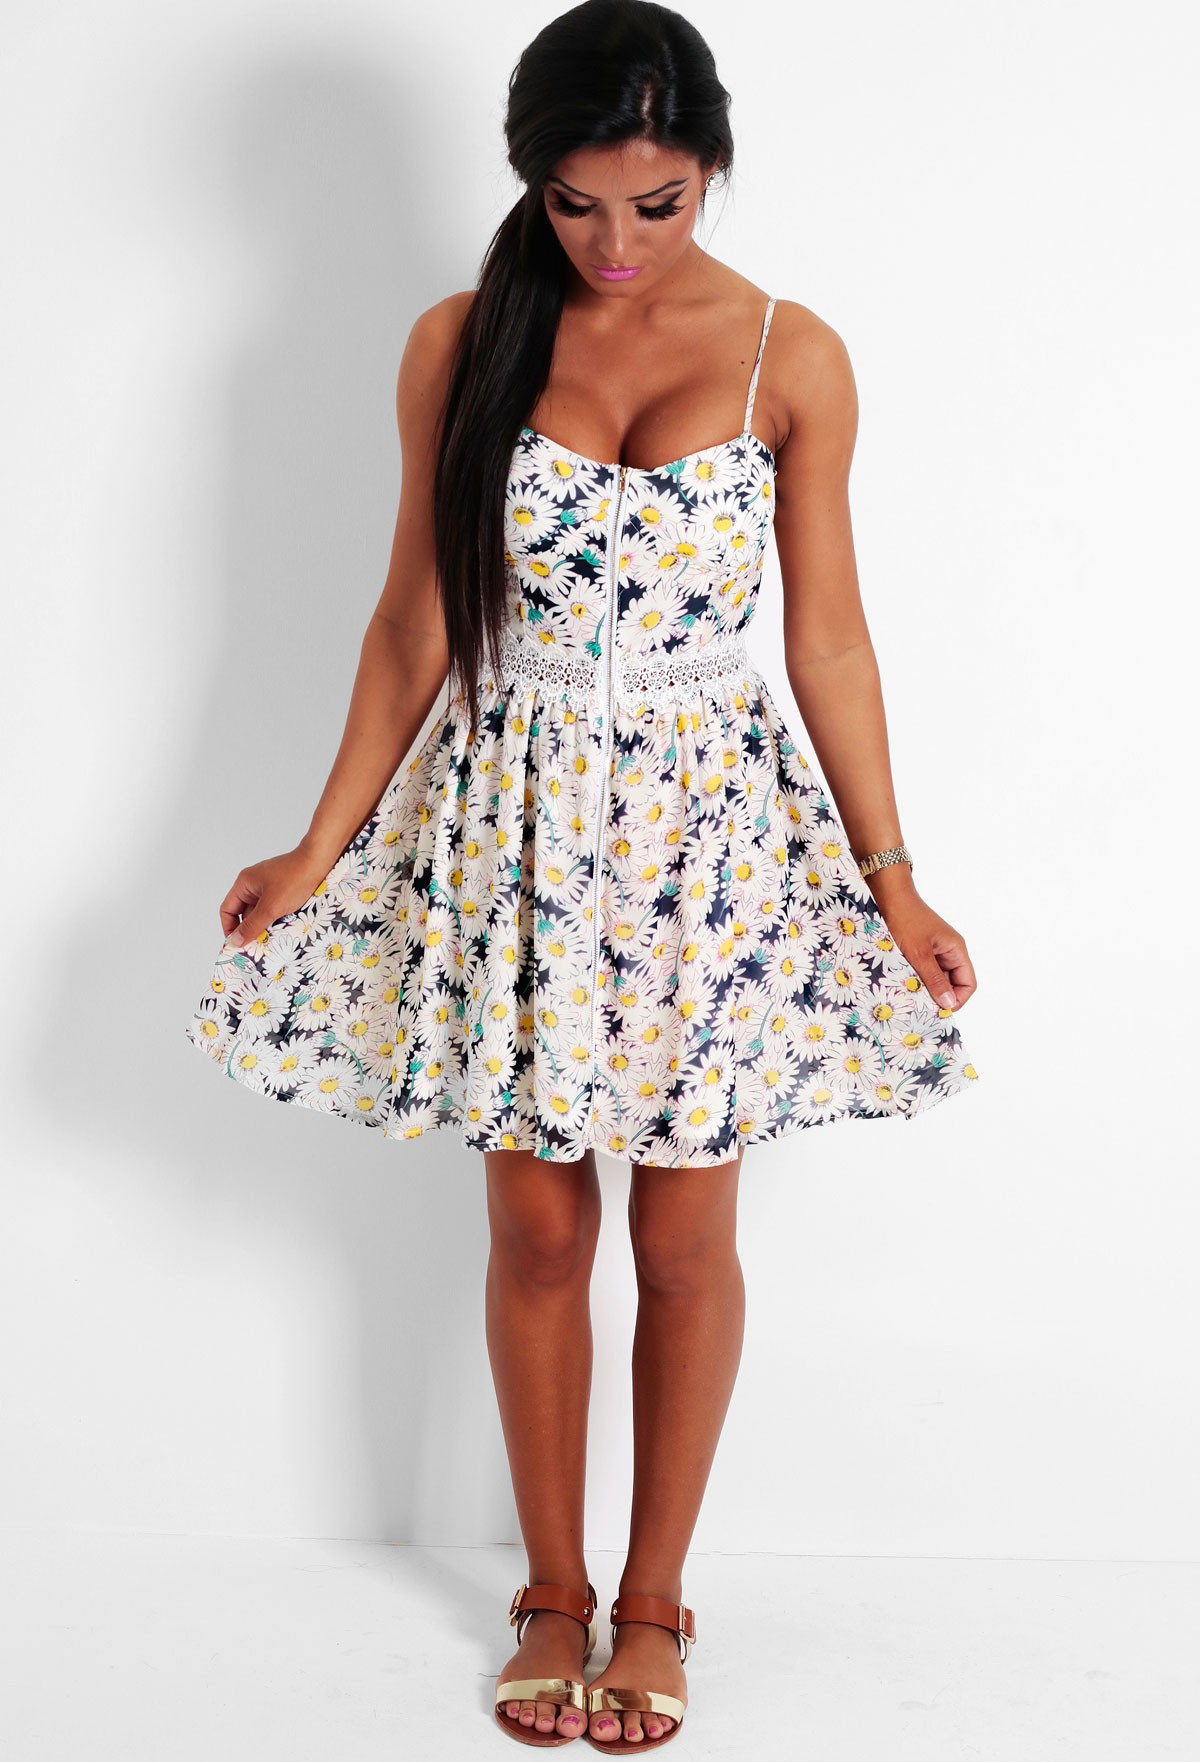 Spring Dream Navy and White Daisy Print Skater Dress | Pink Boutique